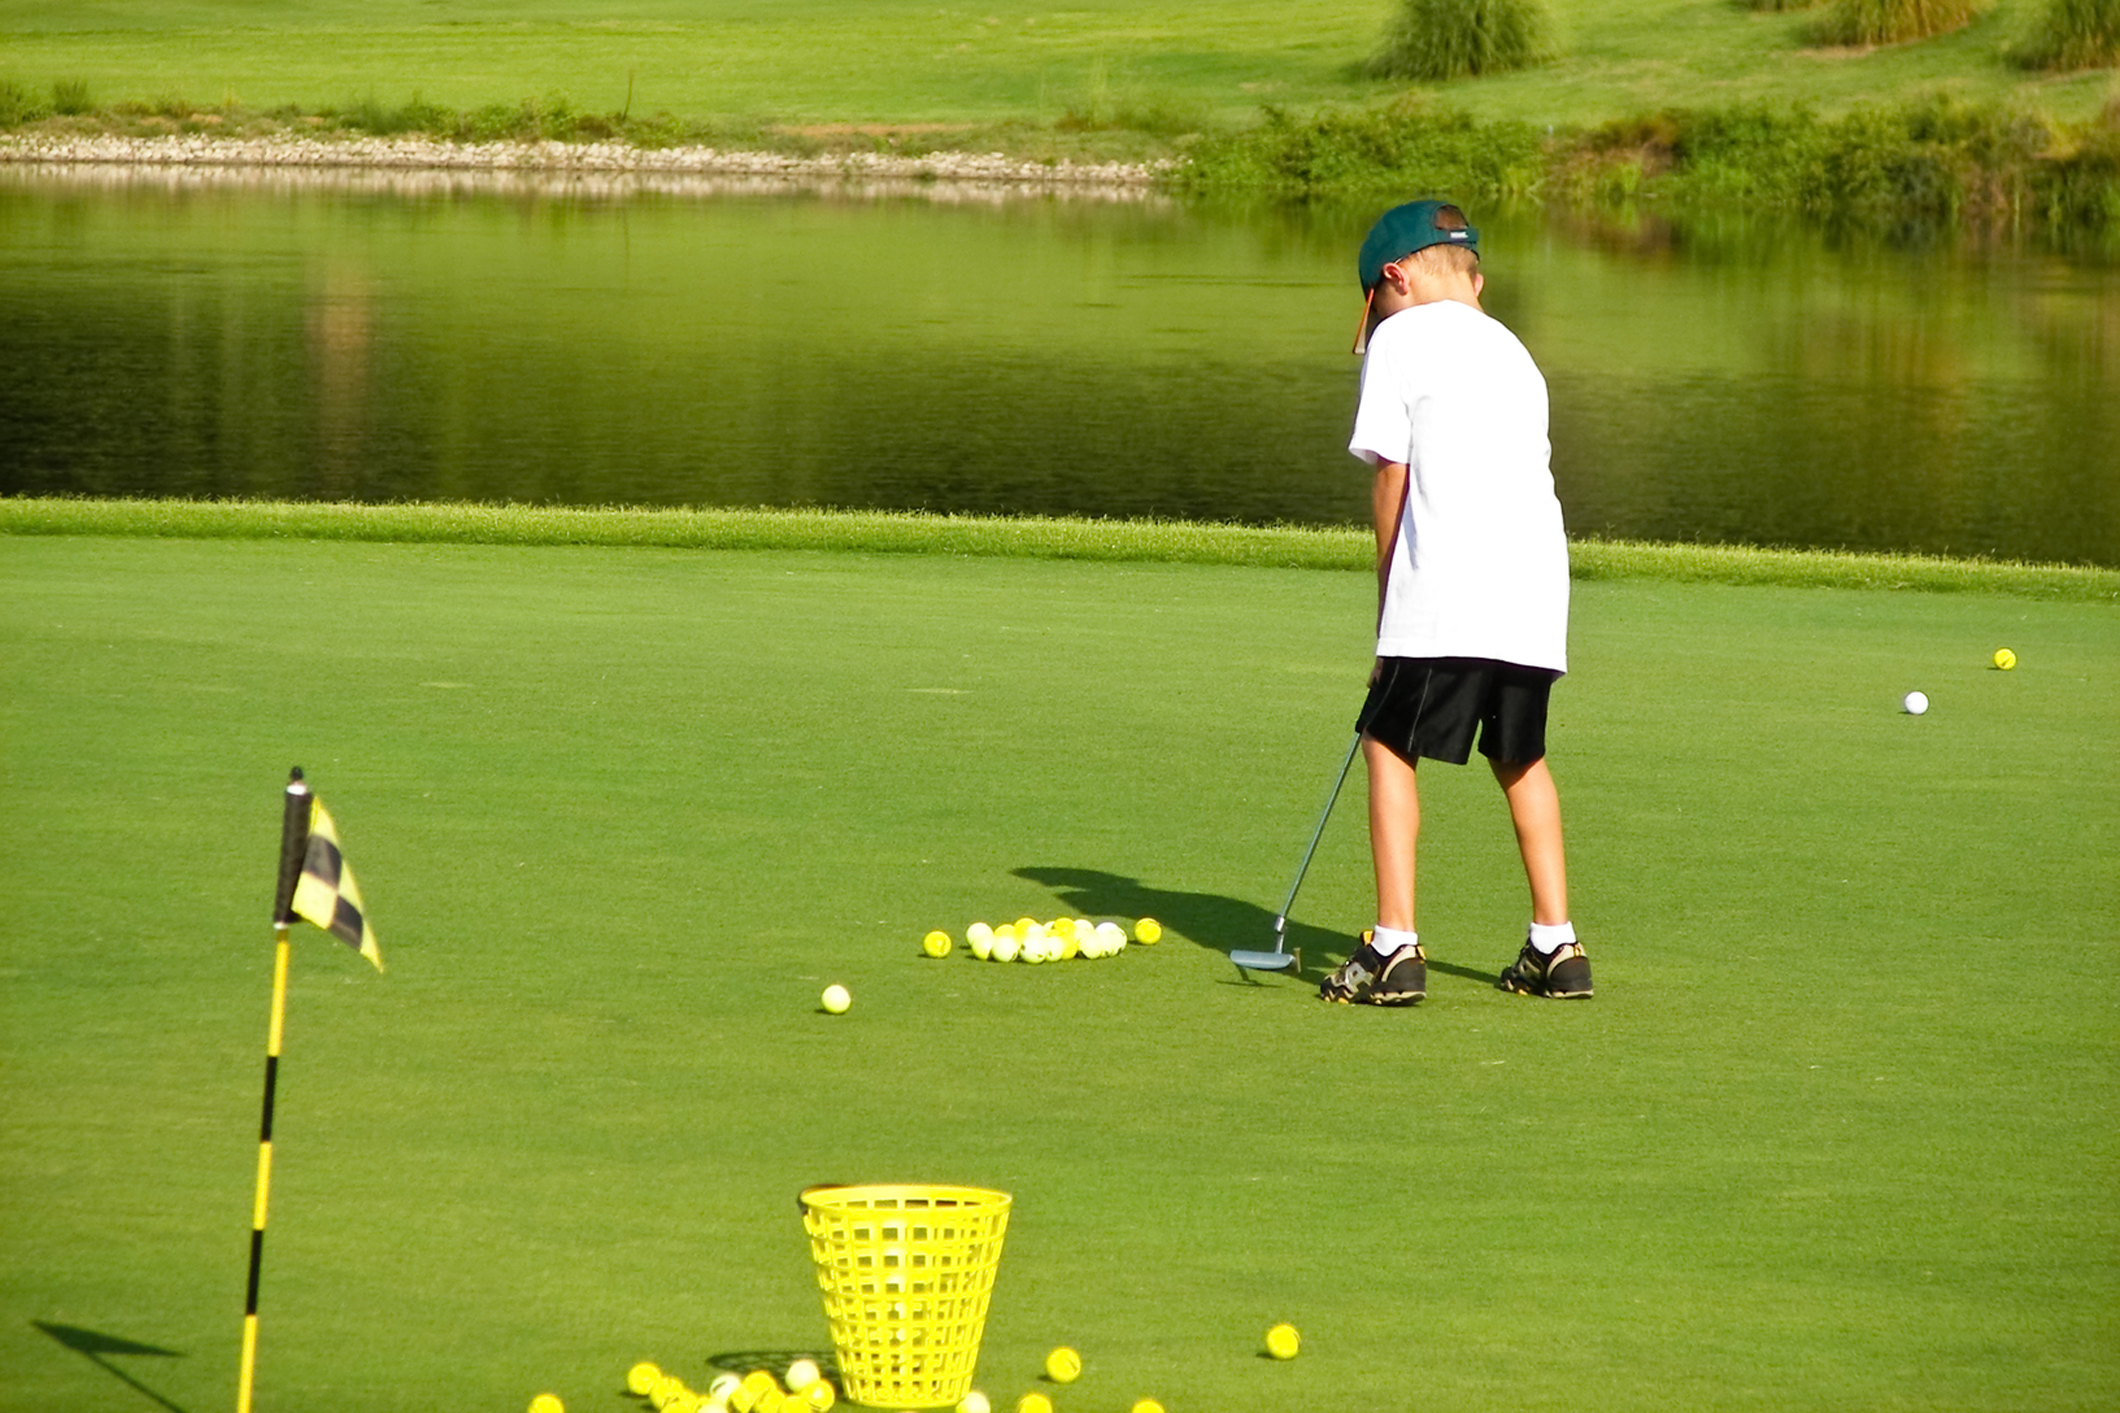 Discover How Golf Schools Can Help You Play Better